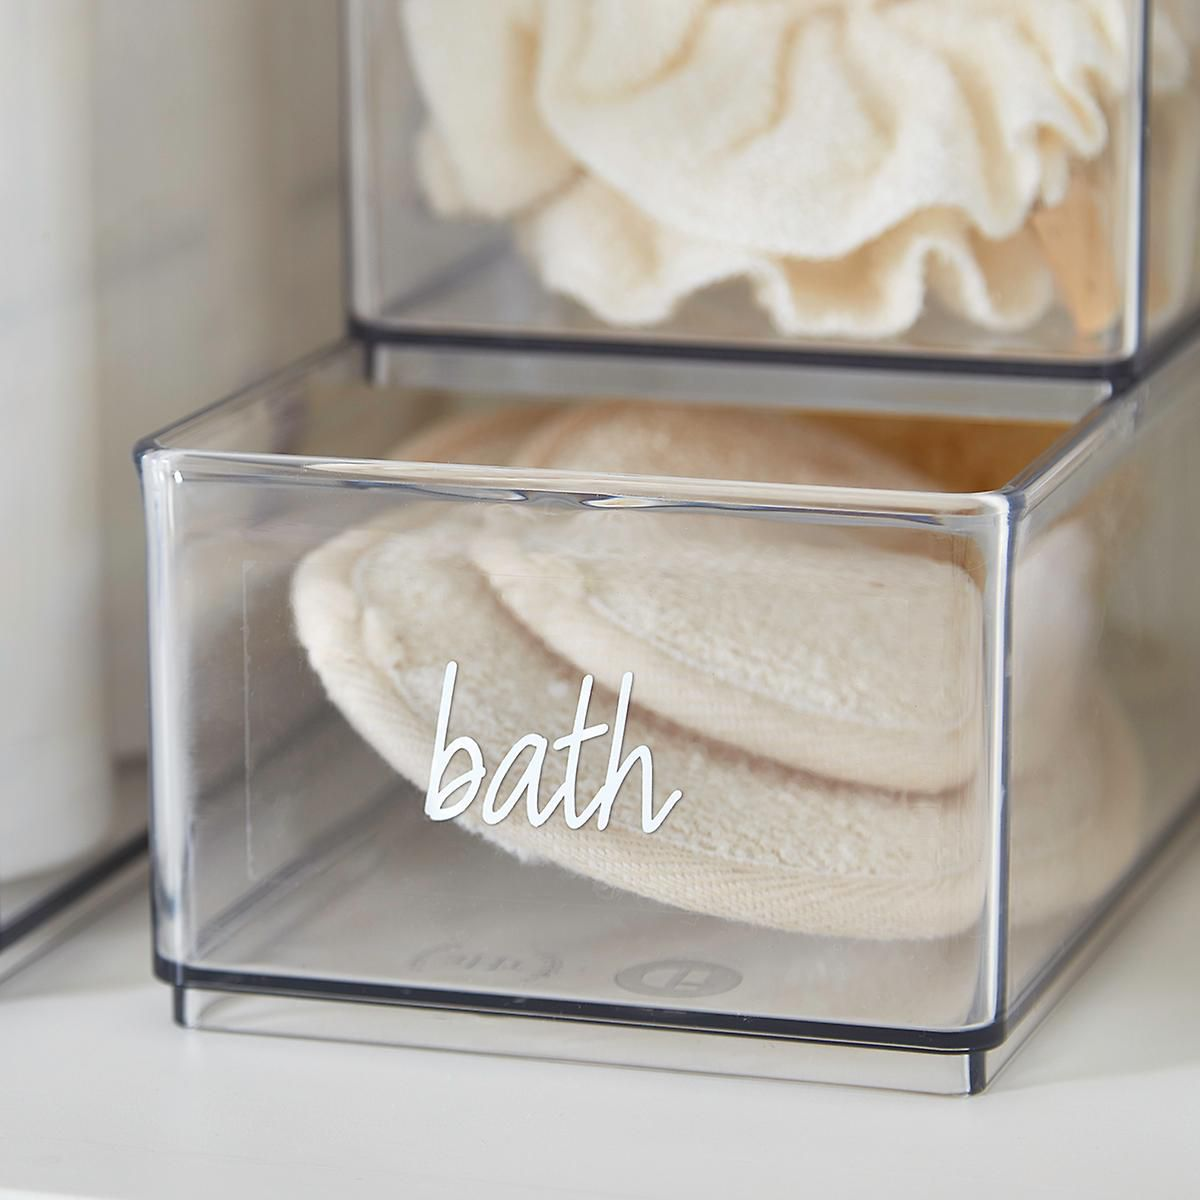 bath label